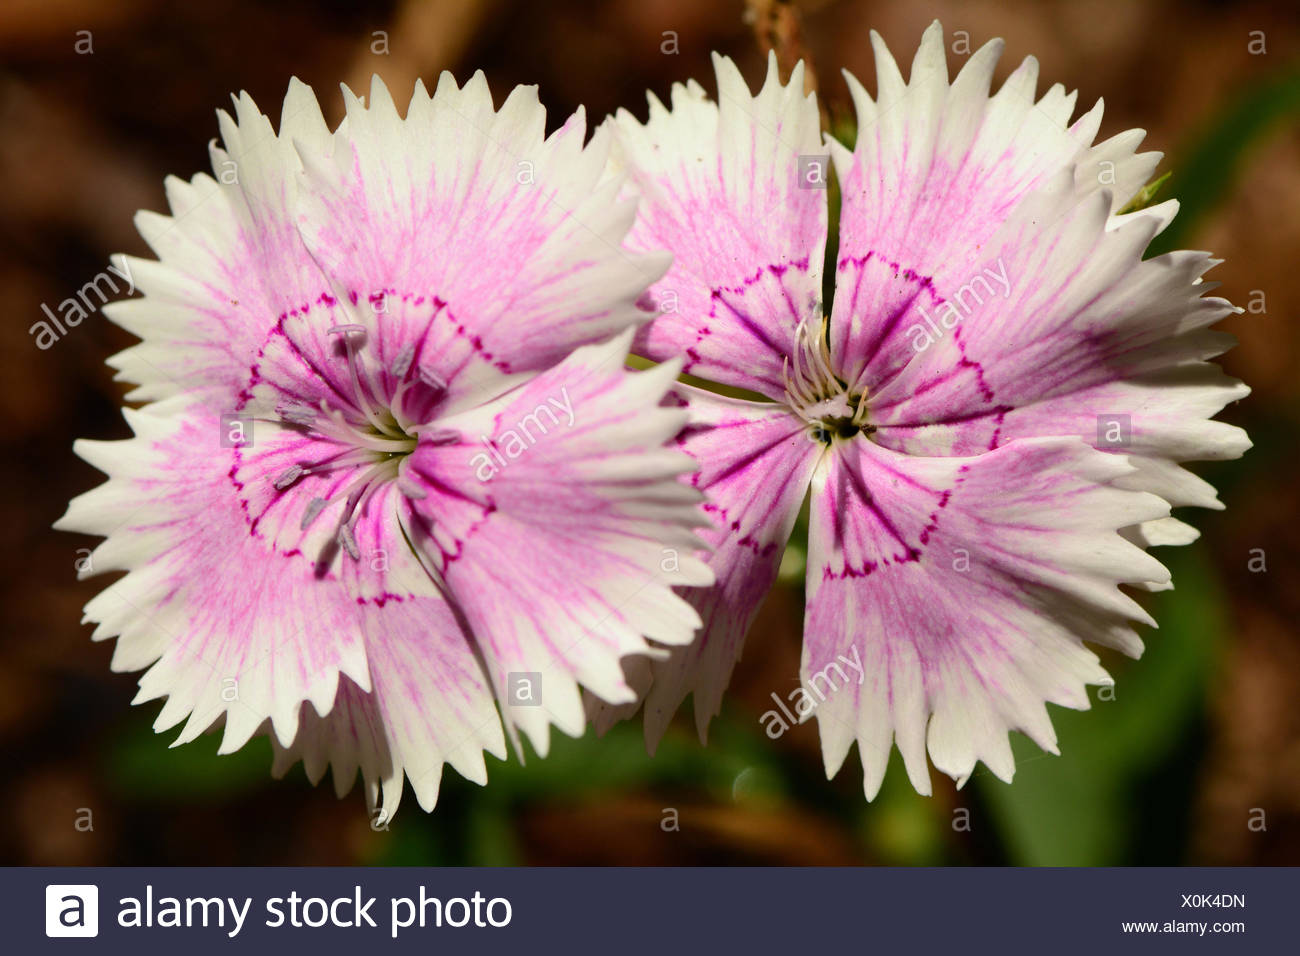 Two Pink Flowers Of The Dianthus Species Stock Photo 275786497 Alamy